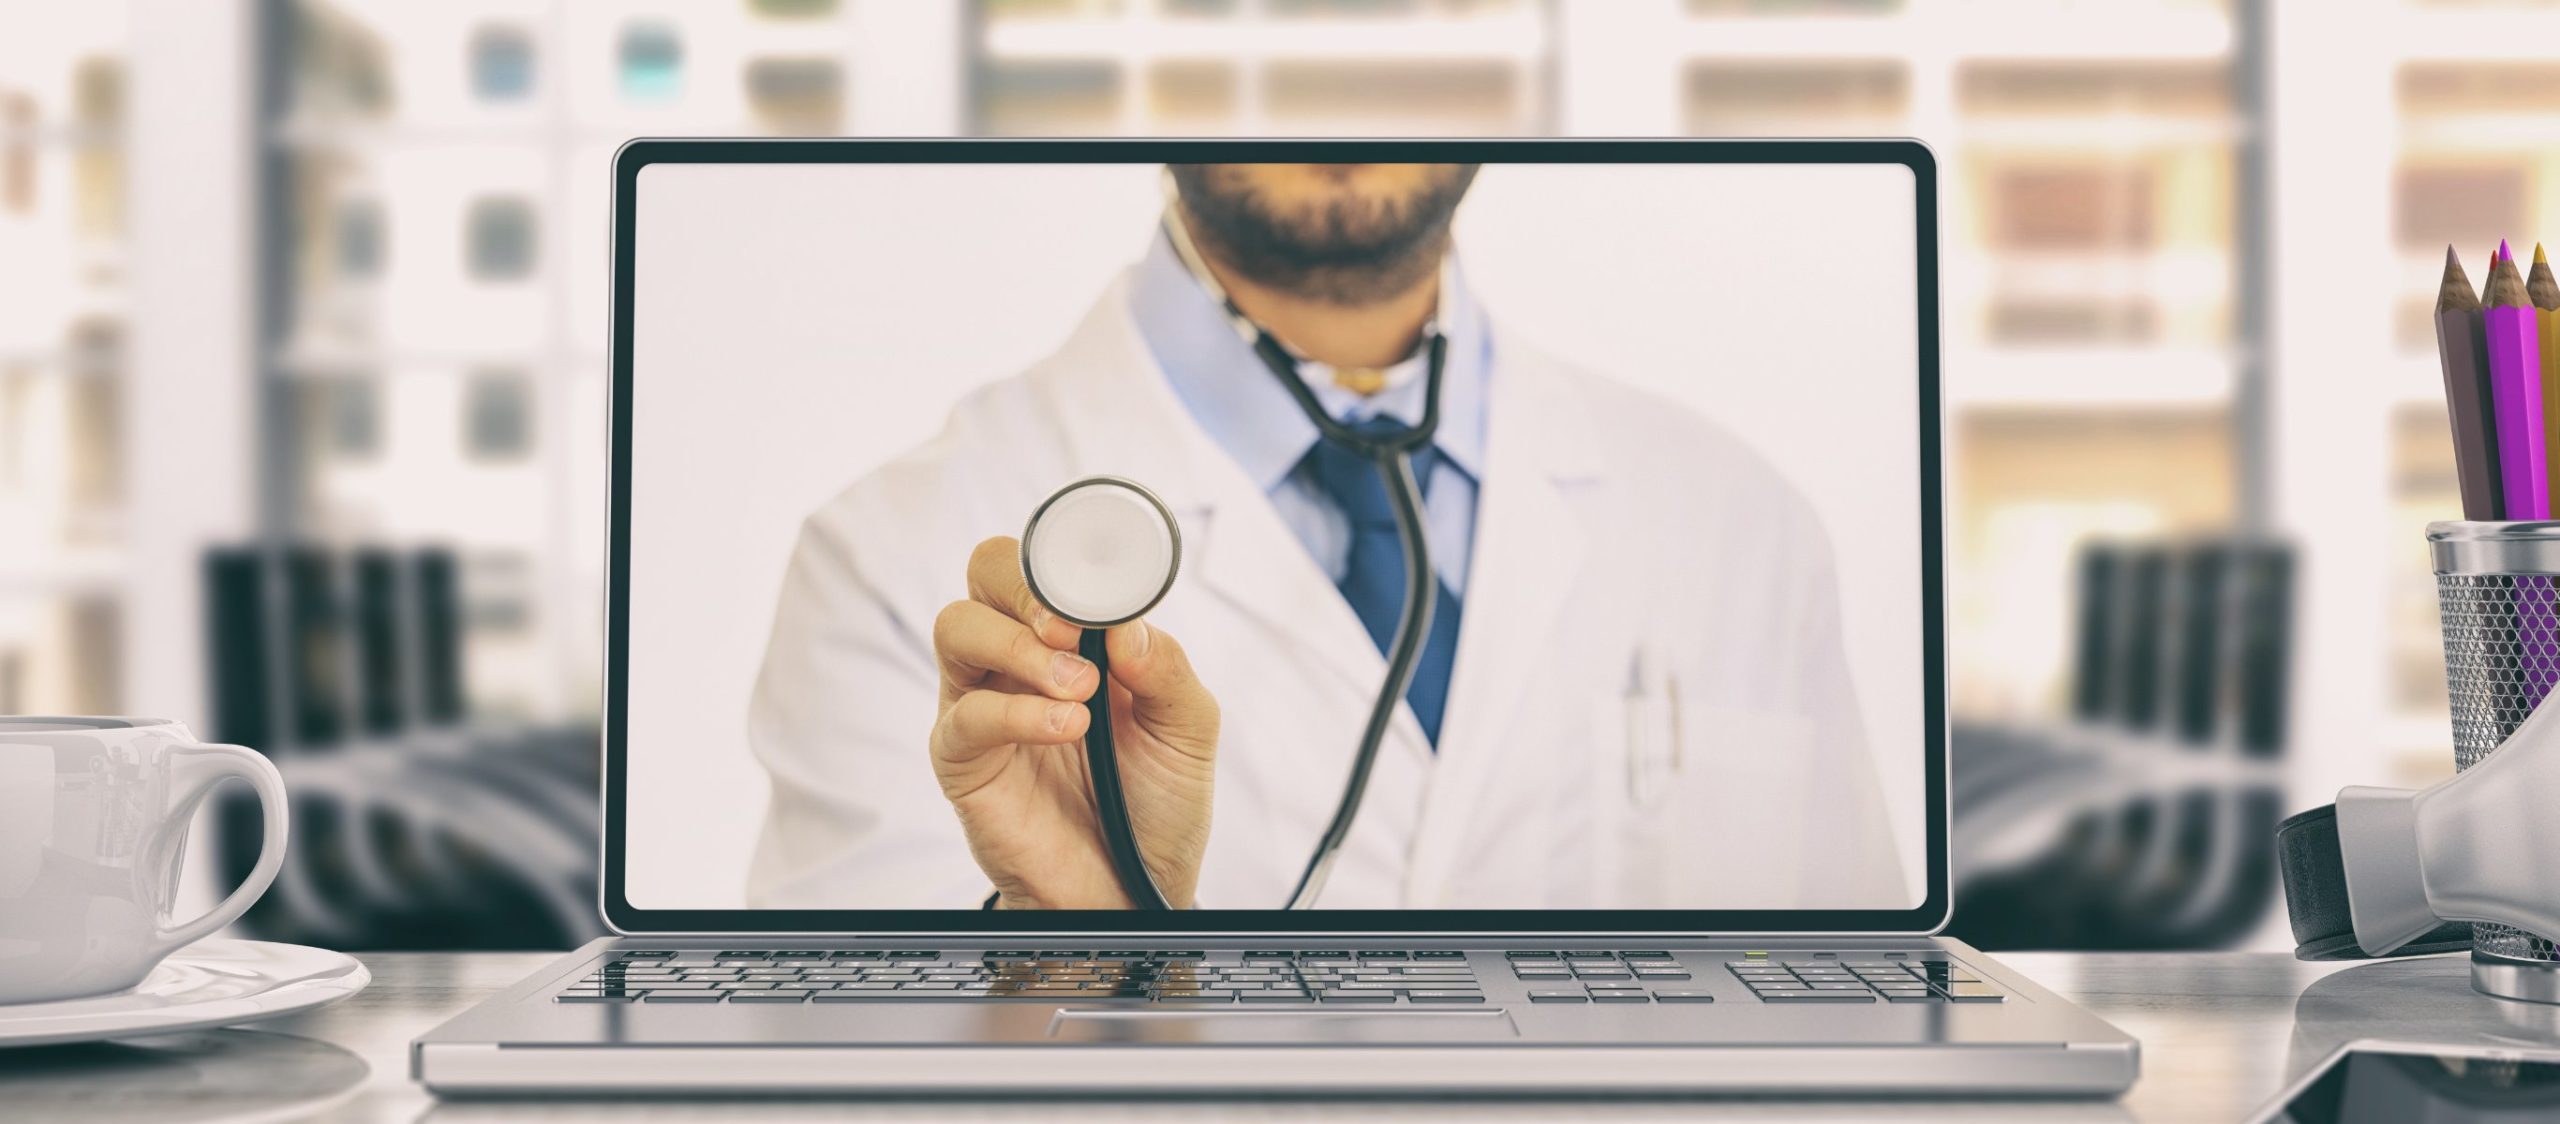 Top 5 Digital Health Care Trends in India: 2020